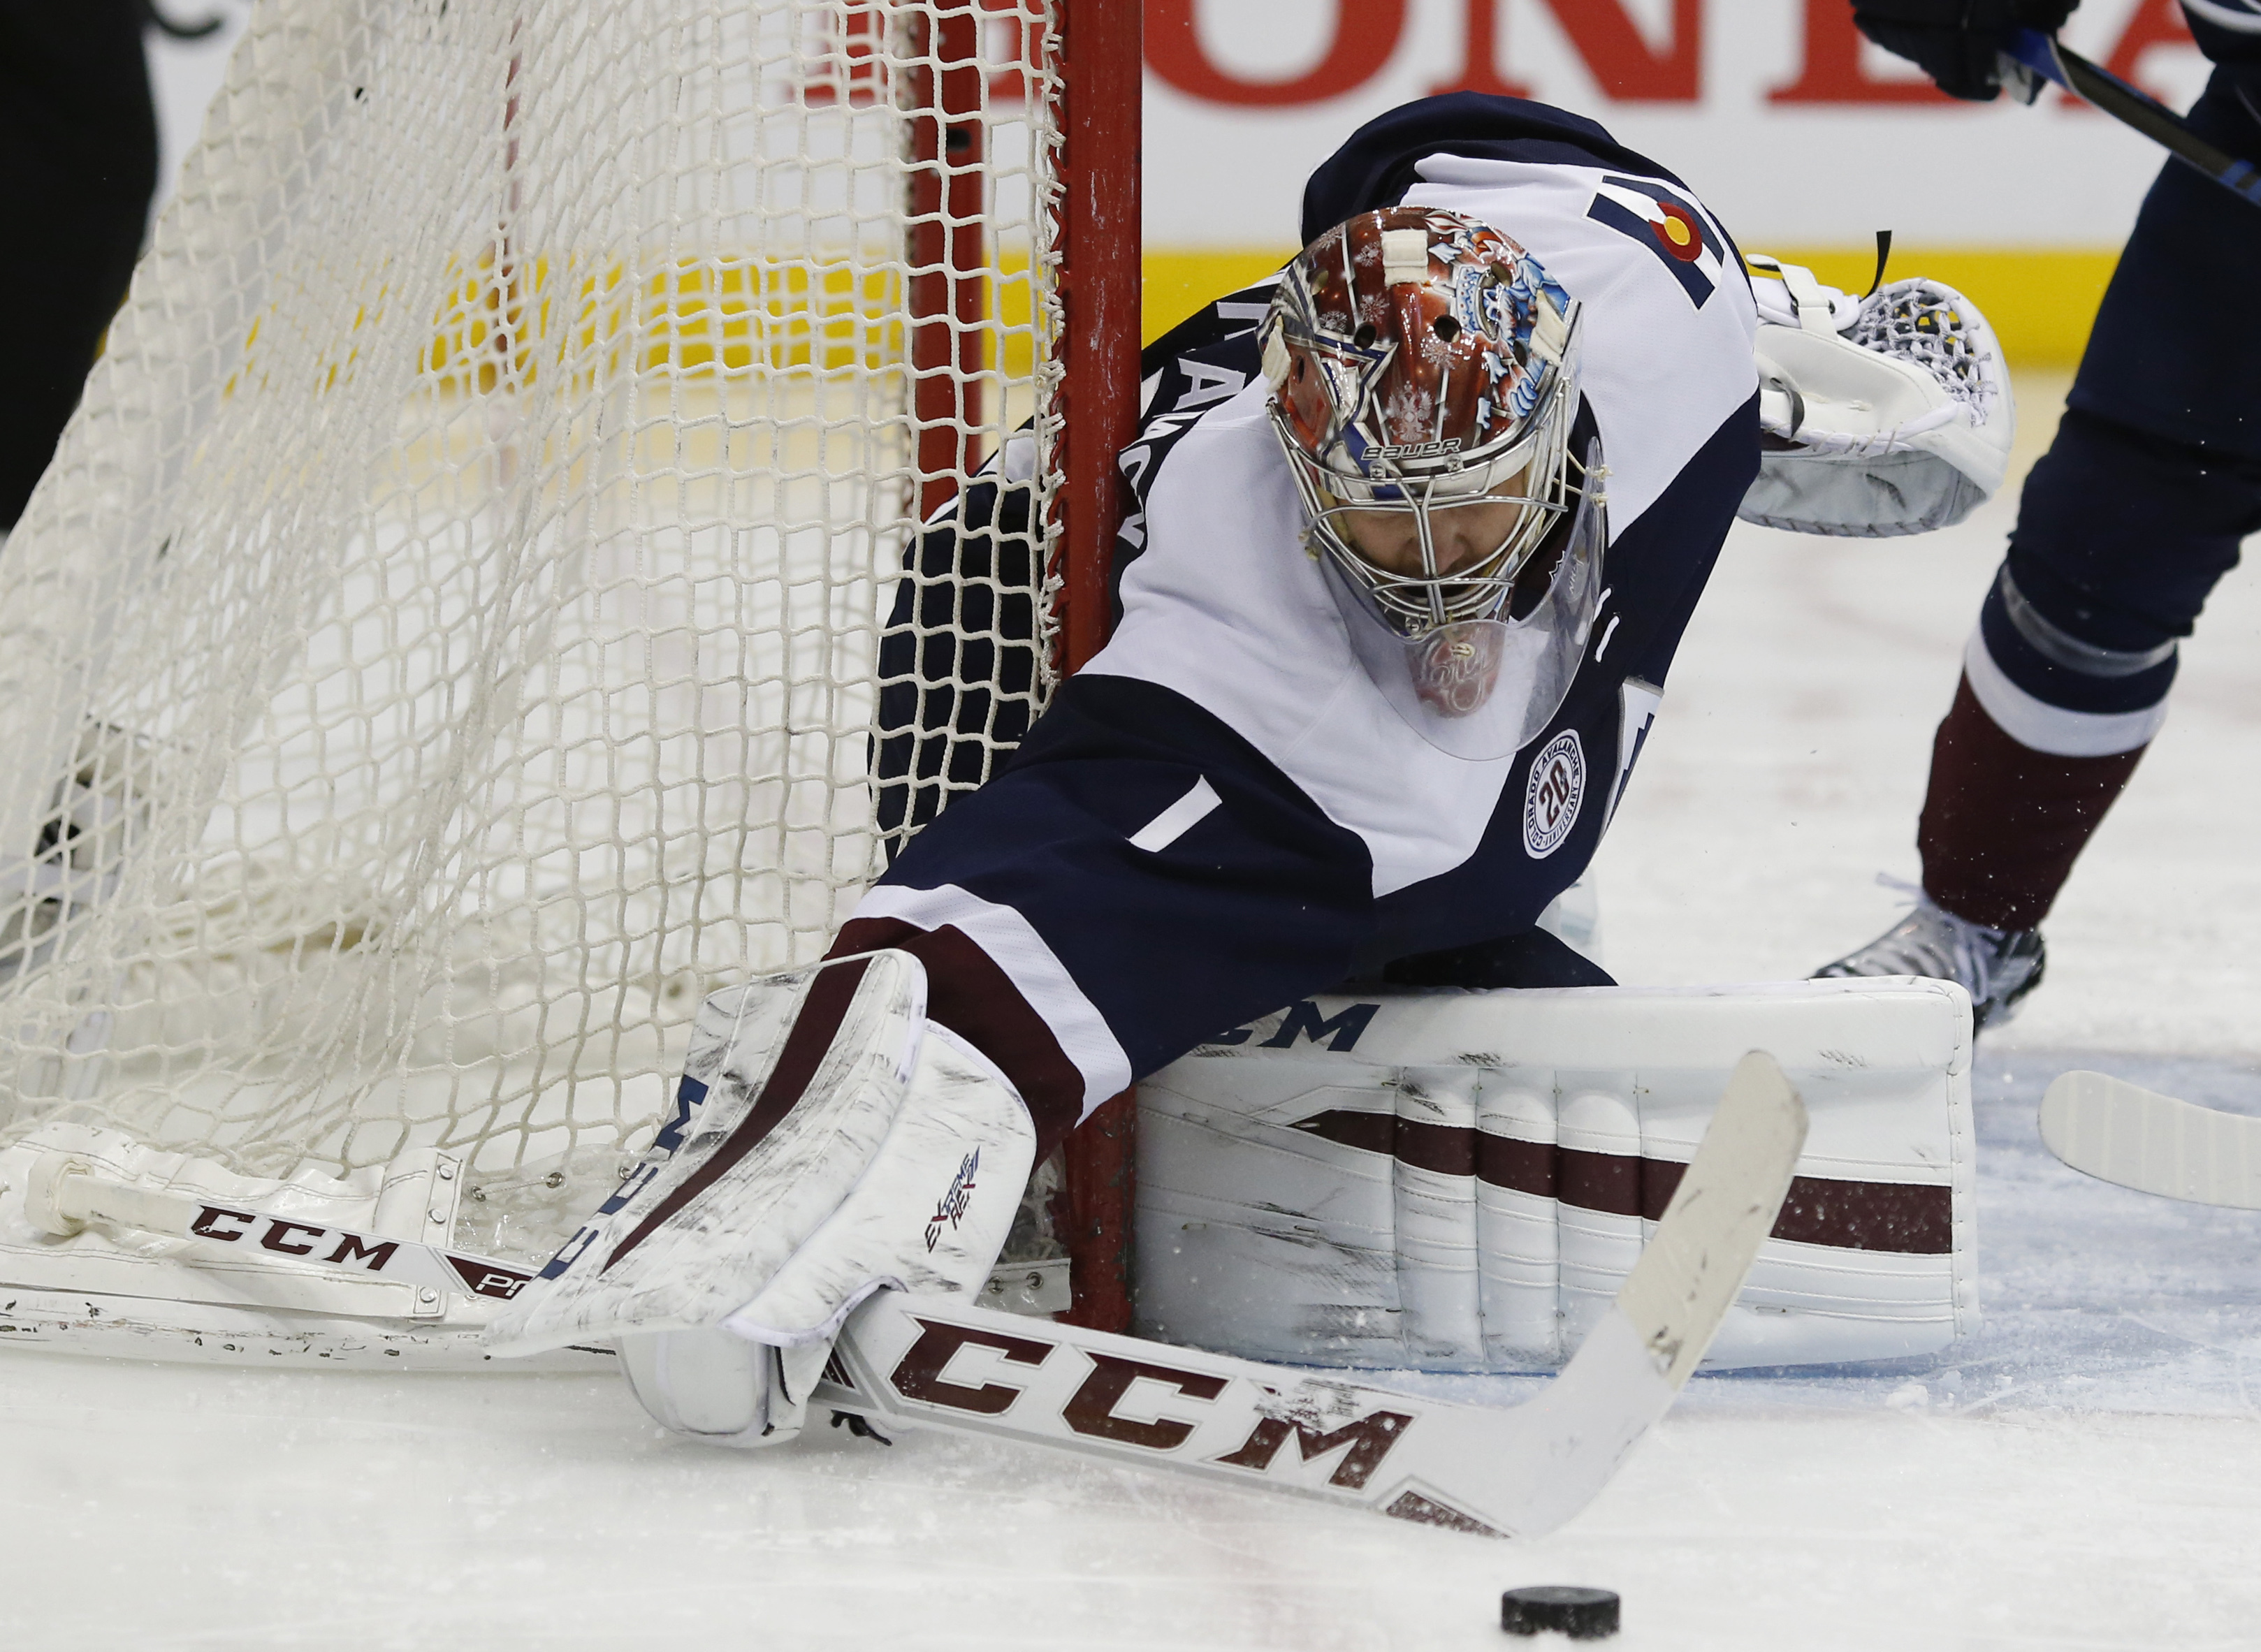 Colorado Avalanche goalie Semyon Varlamov, of Russia, makes a stick save of a shot against the Arizona Coyotes in the second period of an NHL hockey game Monday, March 7, 2016, in downtown Denver. (AP Photo/David Zalubowski)